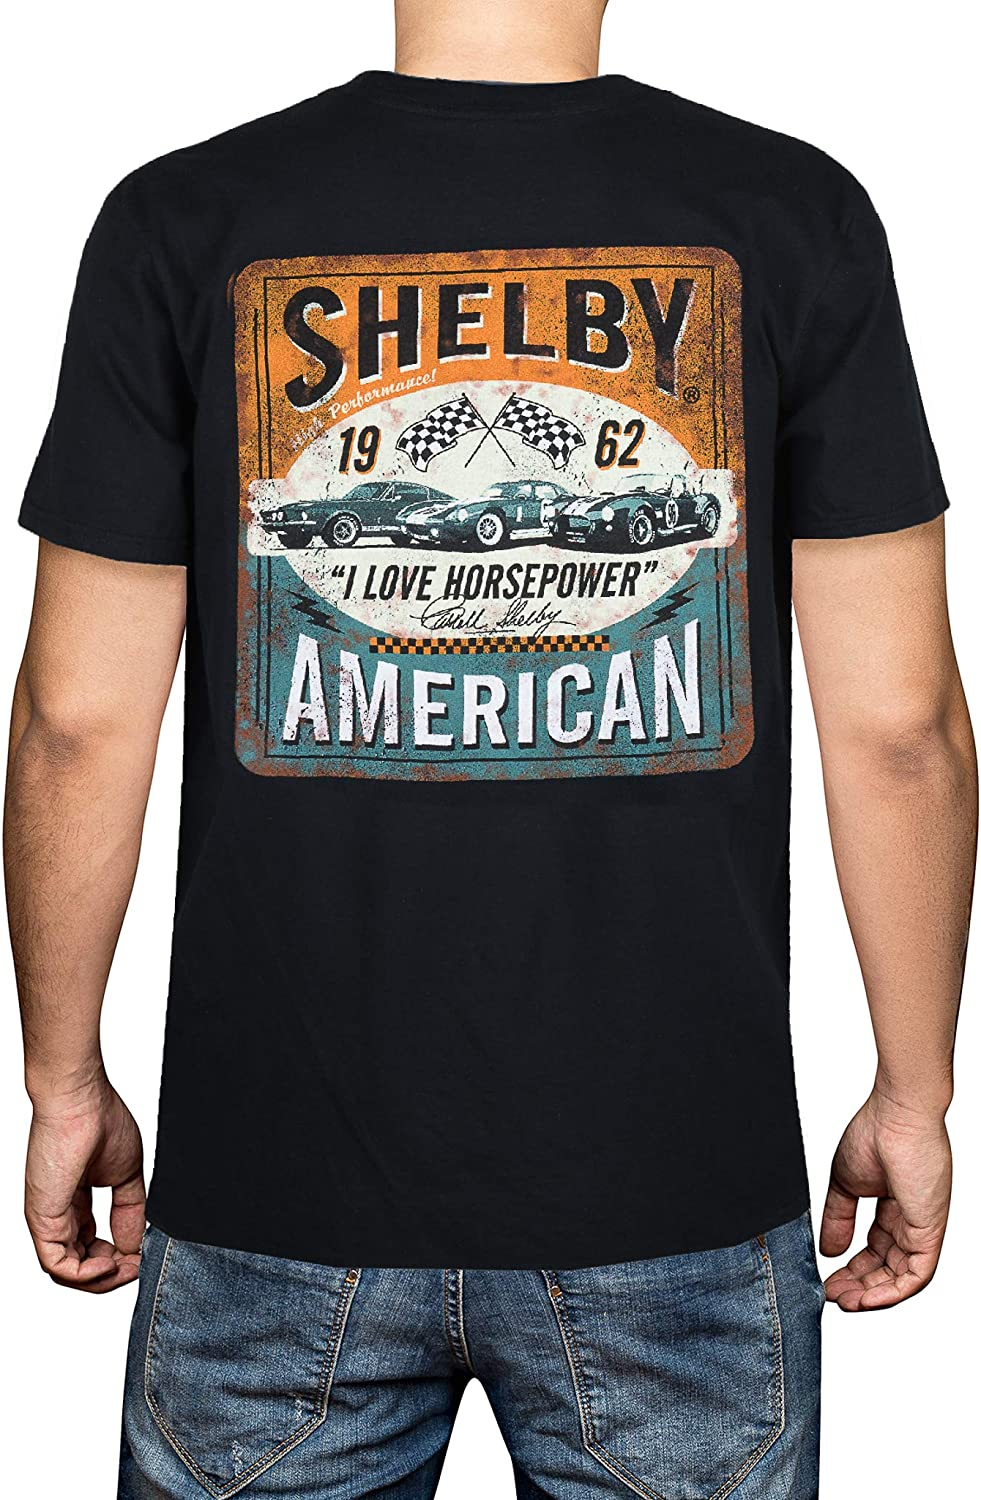 Shelby American I Love Horesepower 100% T-Shirt Latest item Spasm price Cotton P Tee